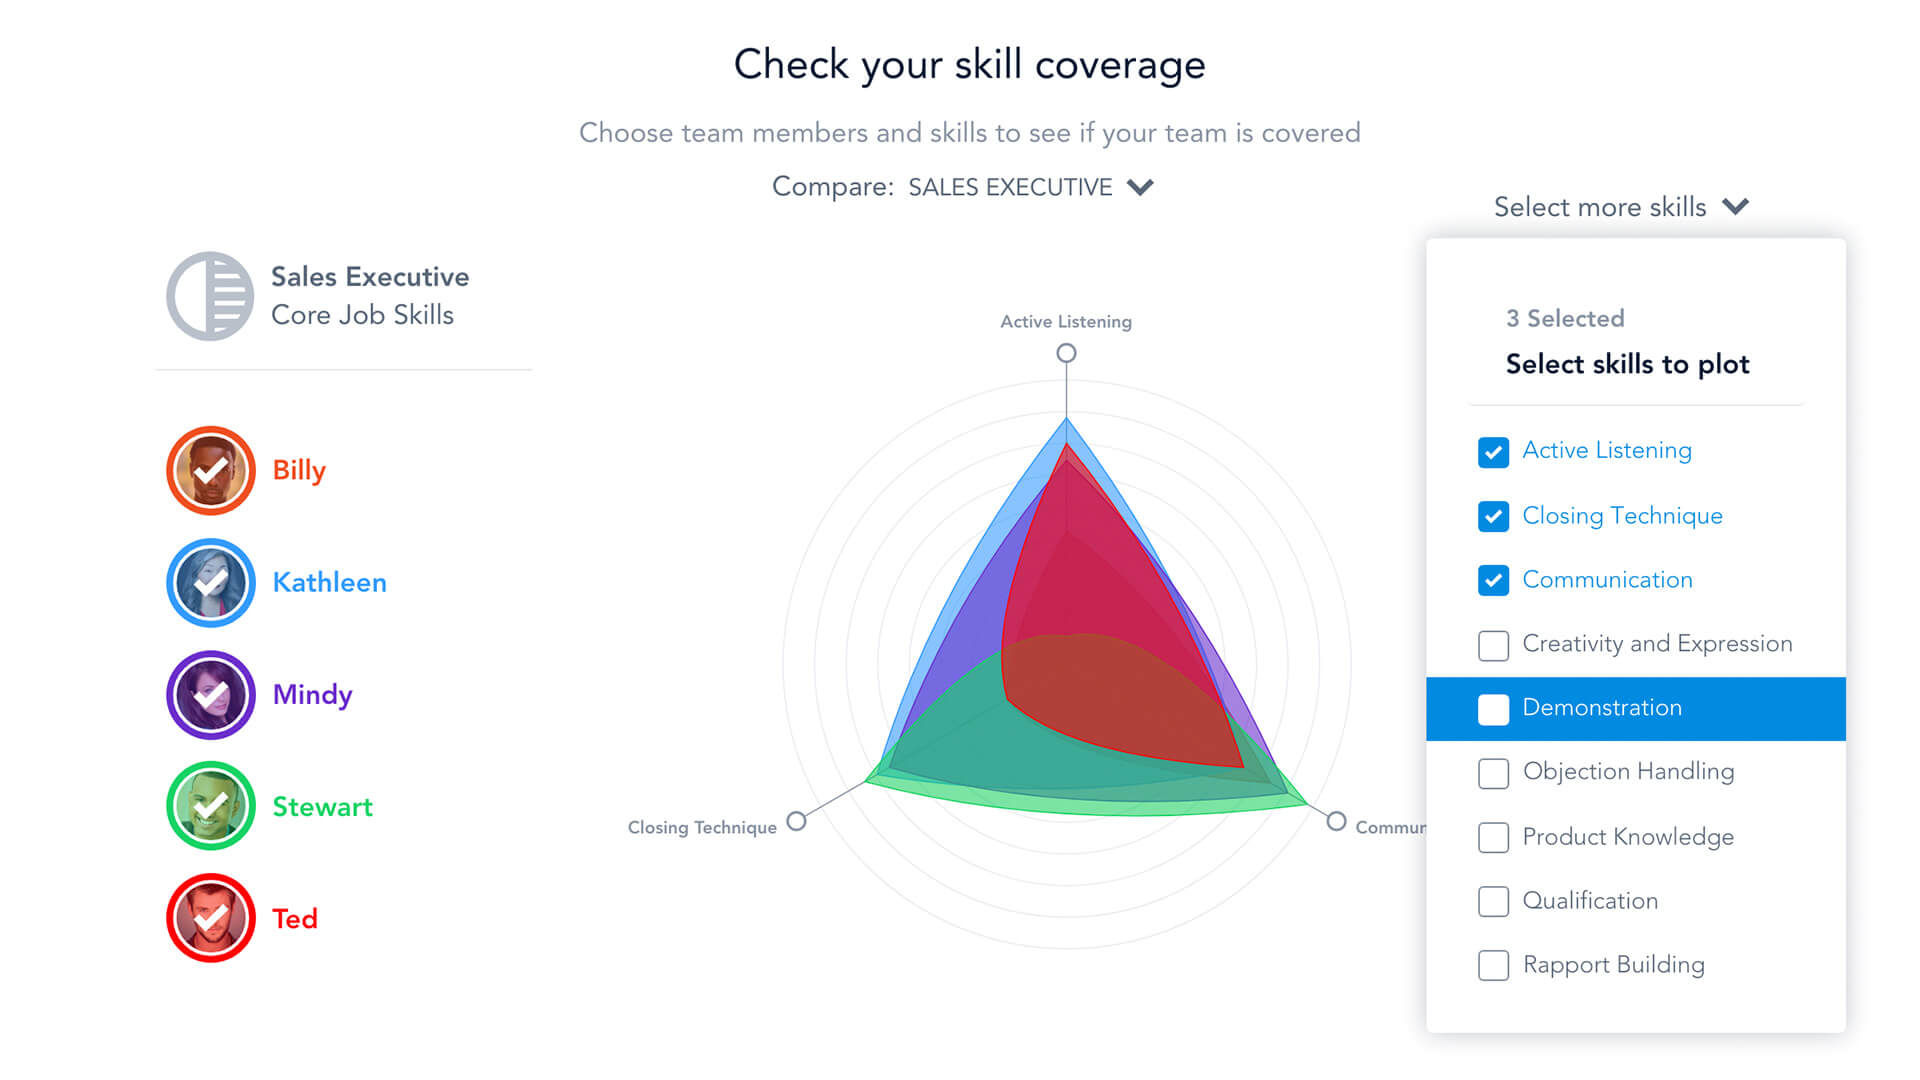 Organizational Agility: Bridge helps you identify and develop your organization's top talent, so when the market shifts, you can quickly respond (and leave your competition dazed in your dust cloud).